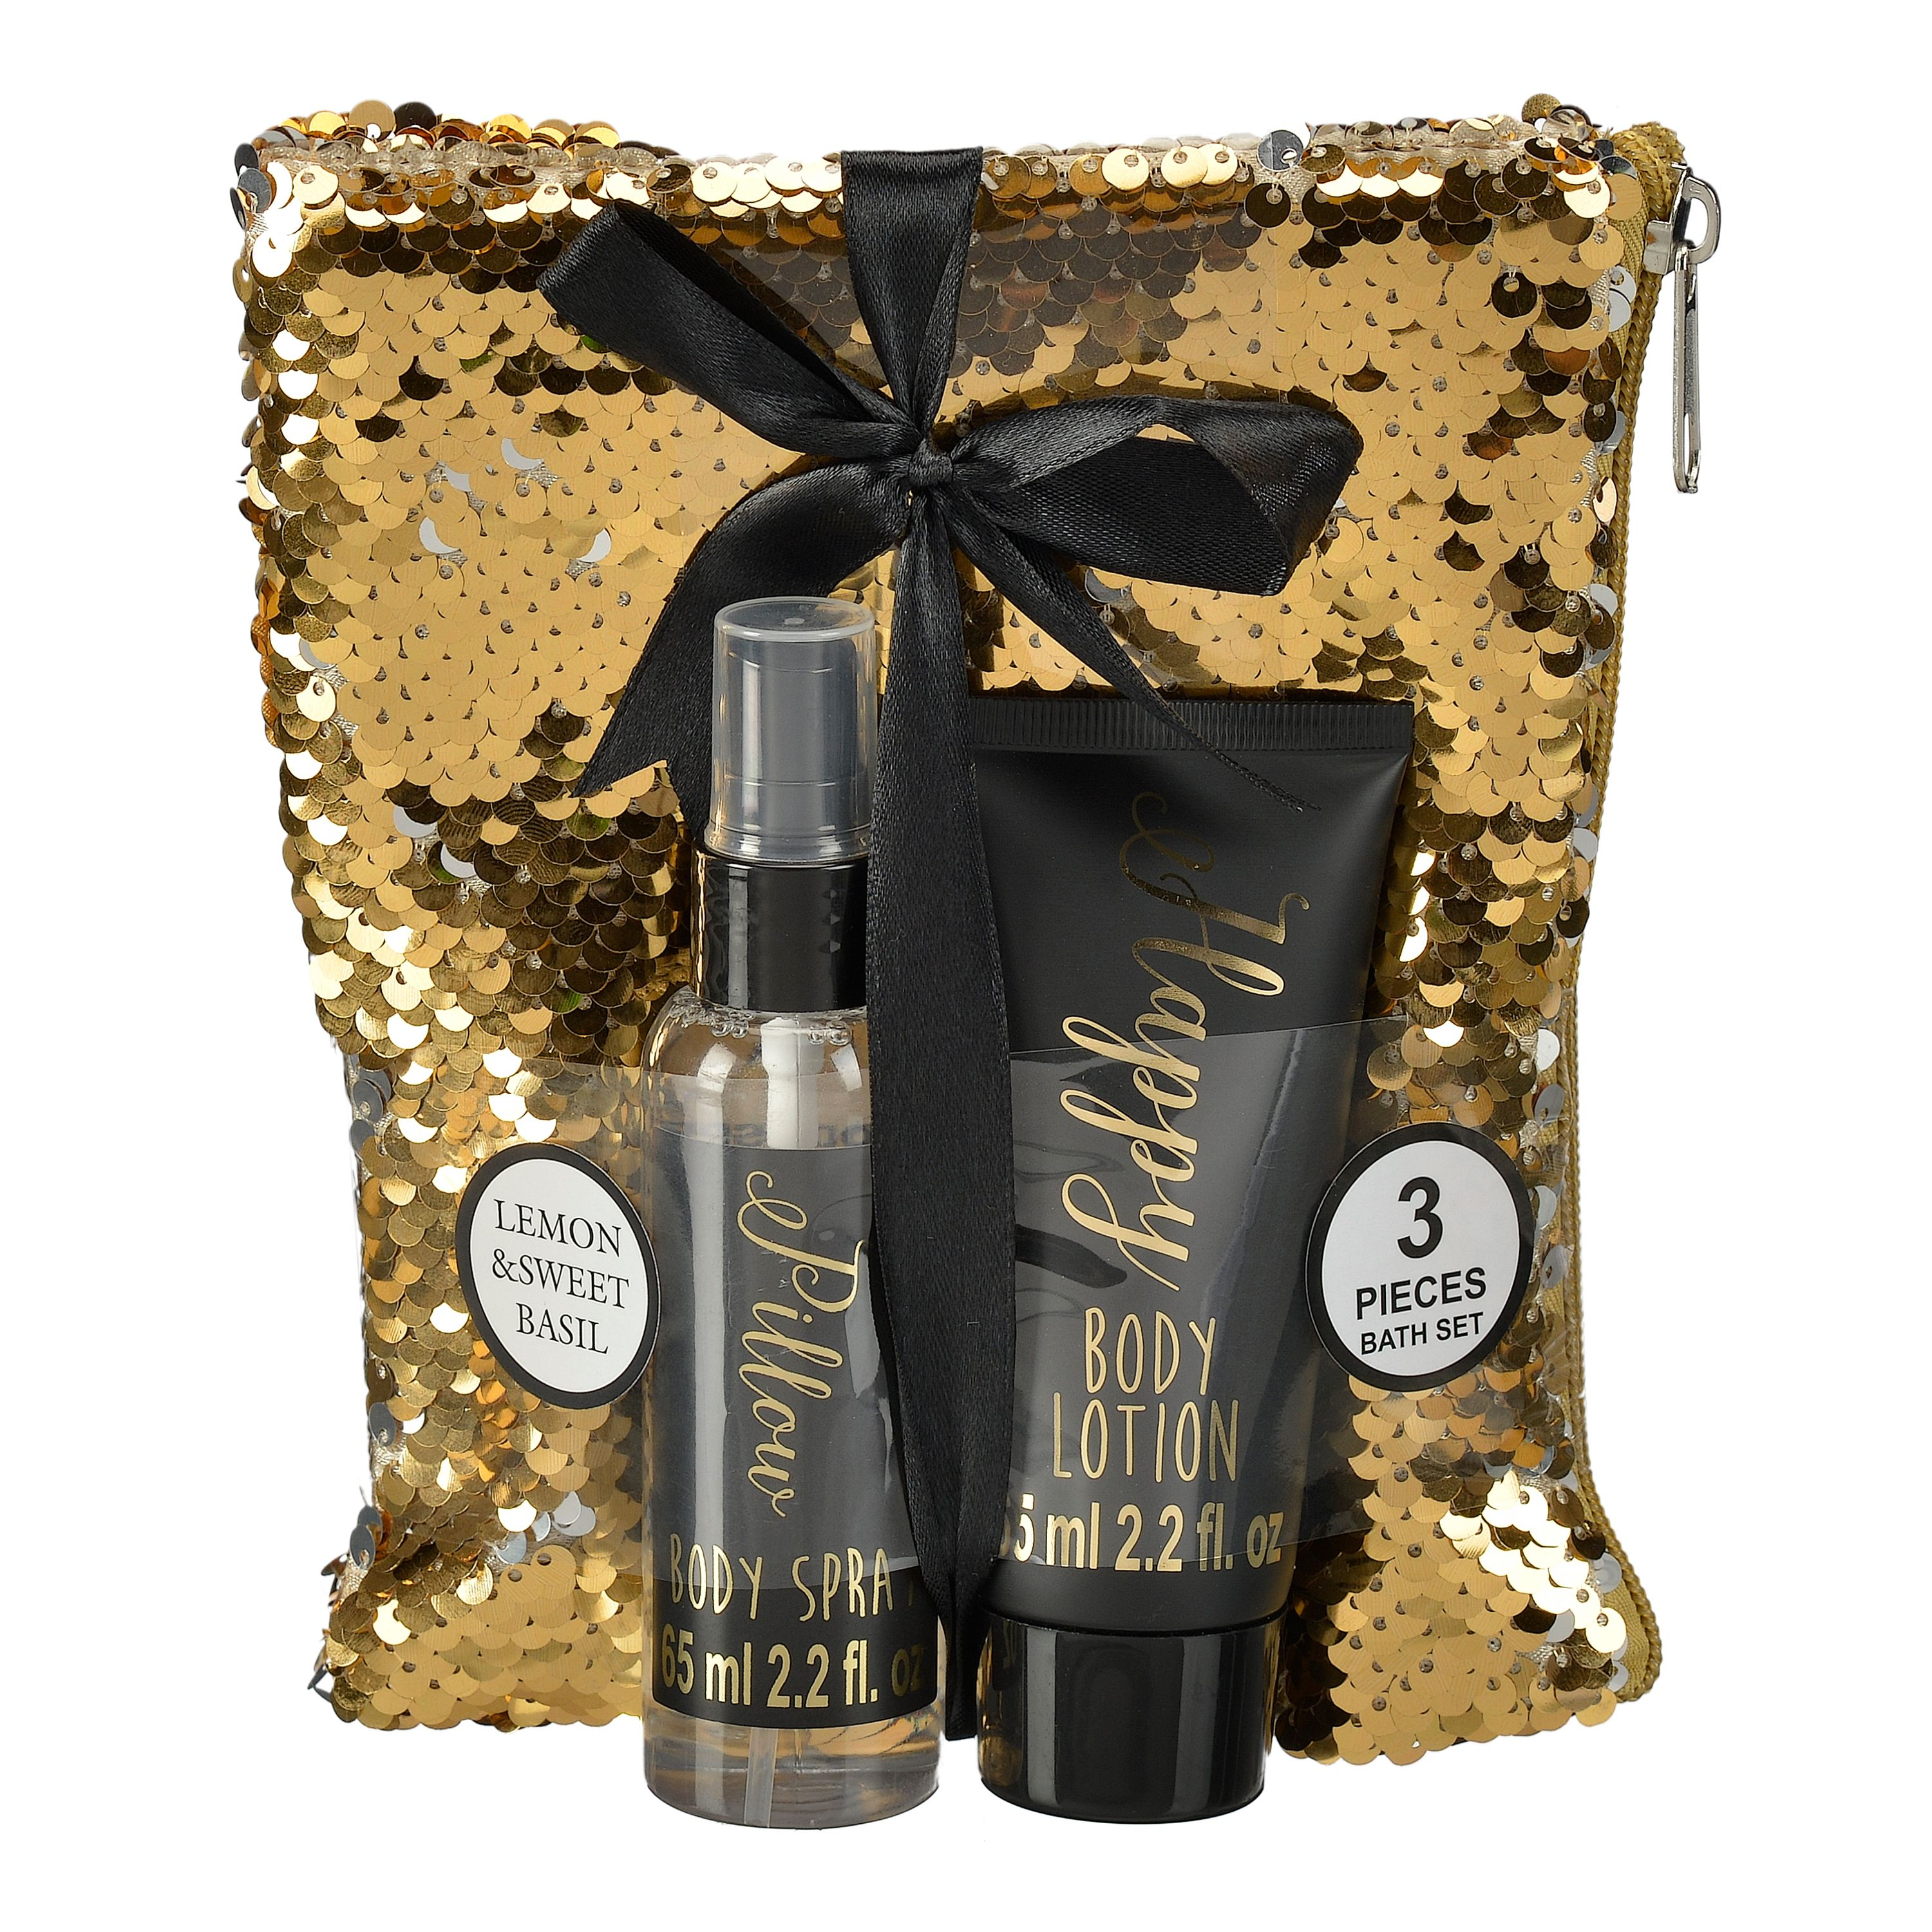 Lemon and Sweet Basil Body Lotion Gift Set with Sequin Bag, 3 Pieces